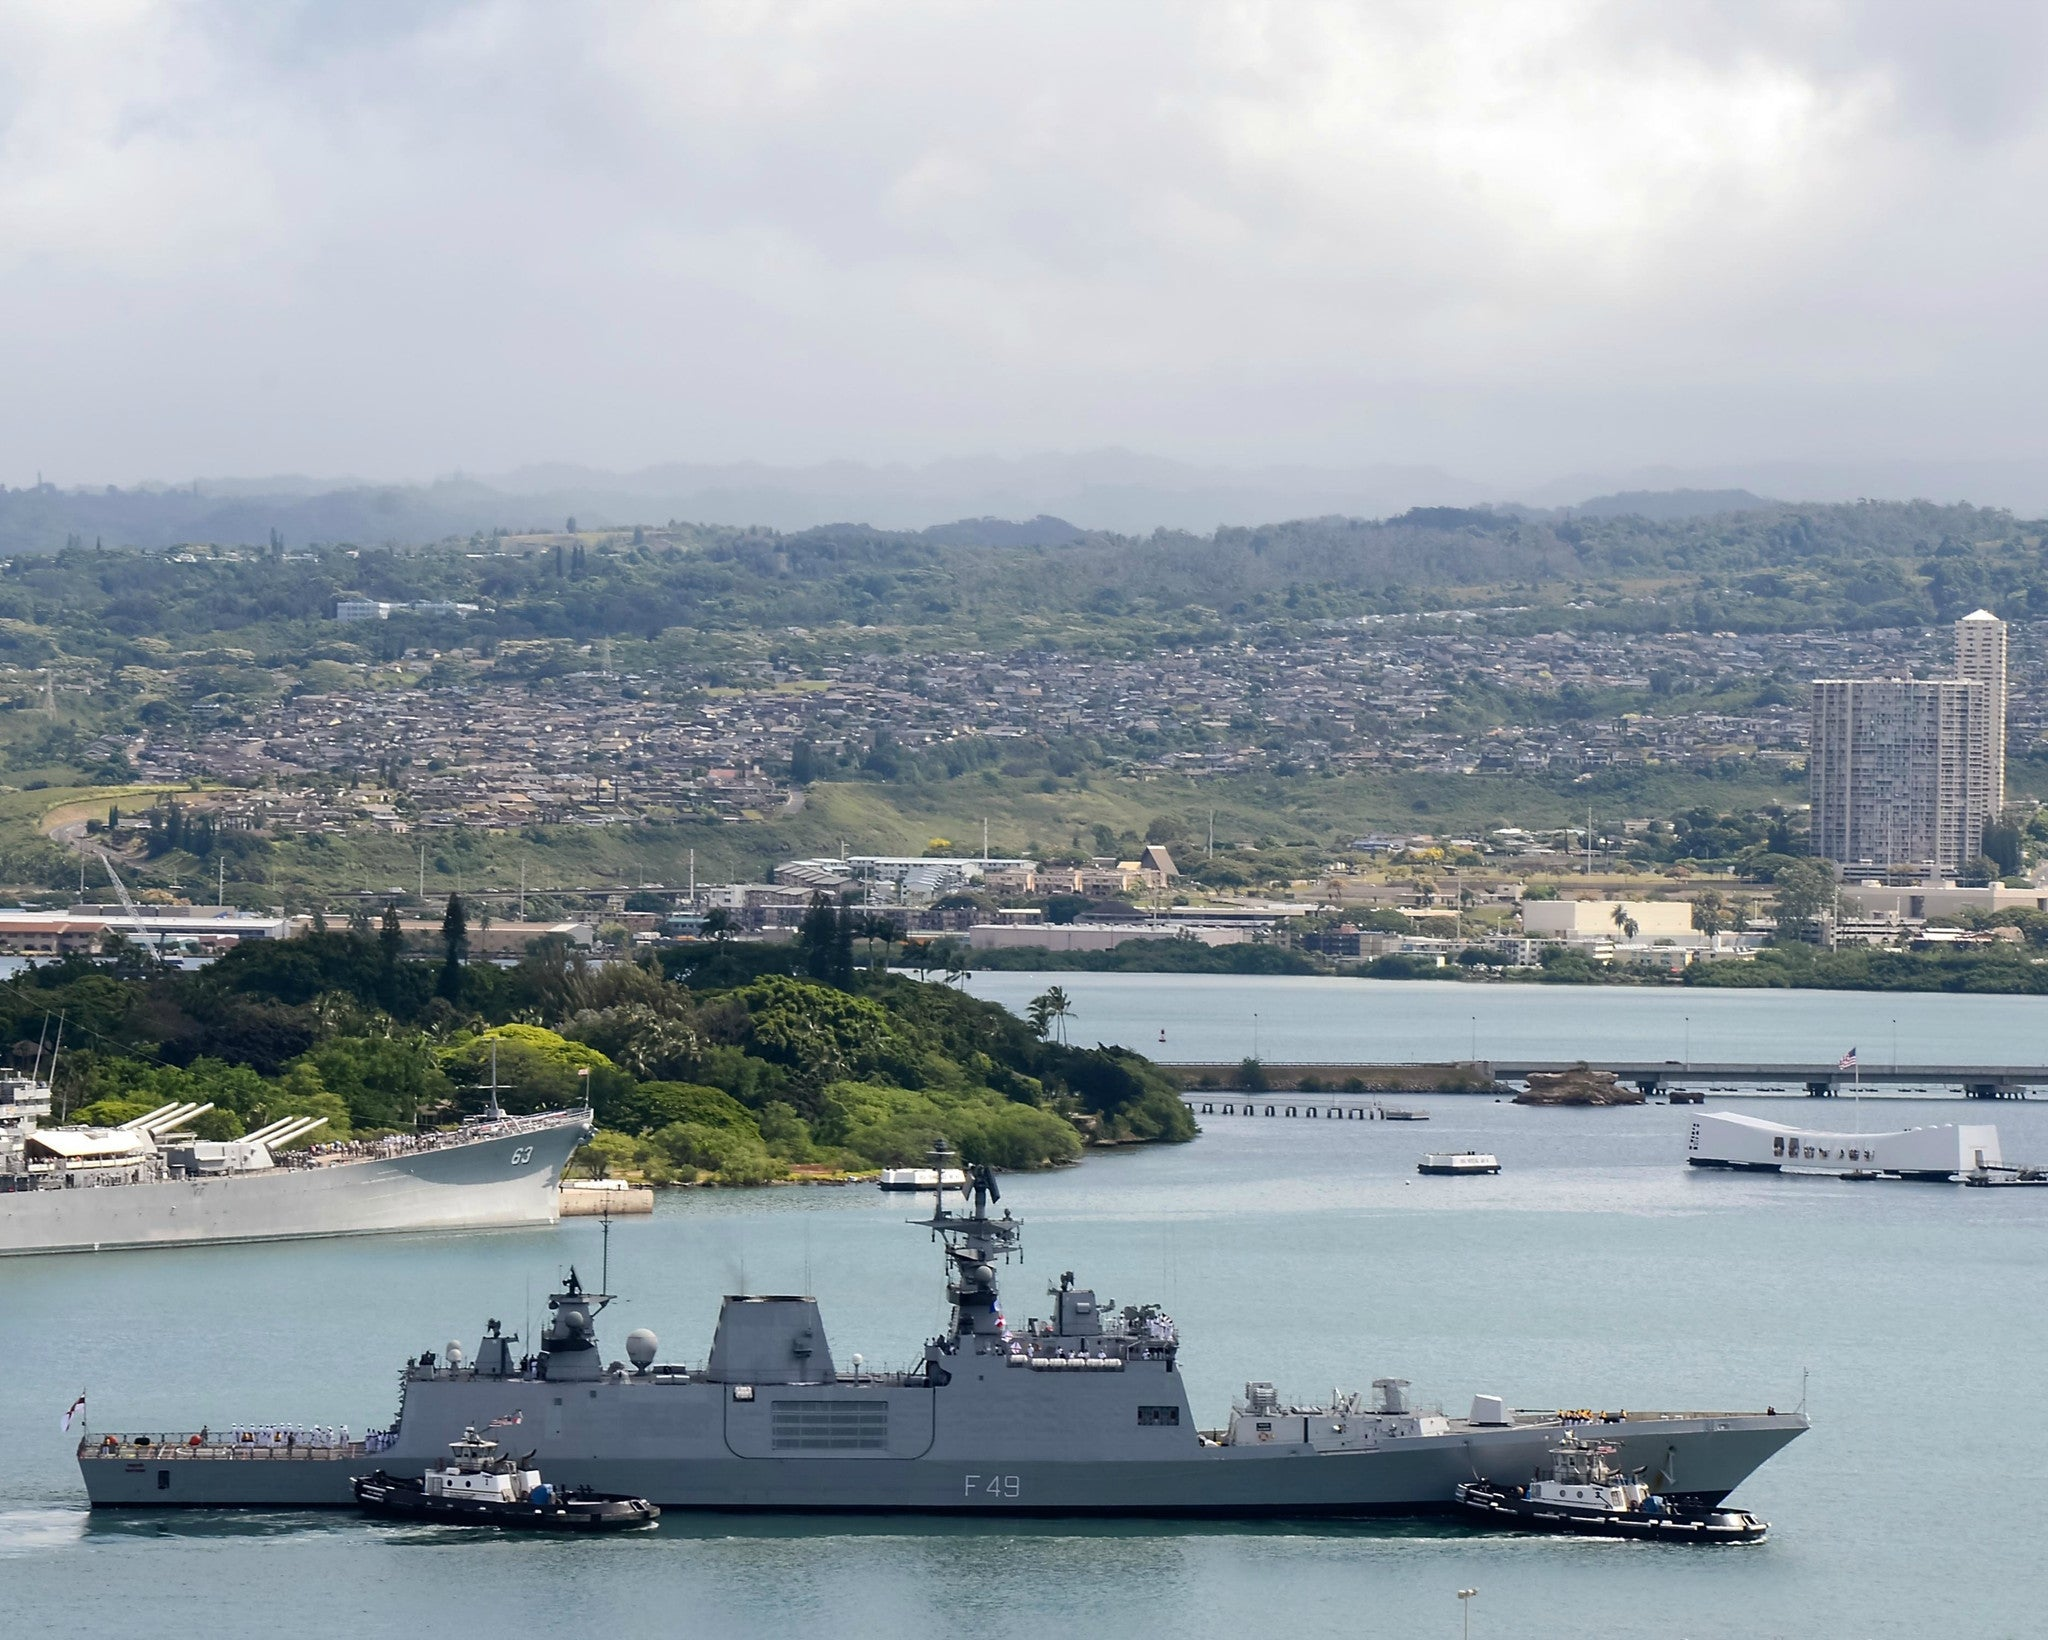 "Indian Navy Frigate INS Sahyadri F-49 at Pearl Harbor July 1, 2014 - 8 x 10"" Photograph"